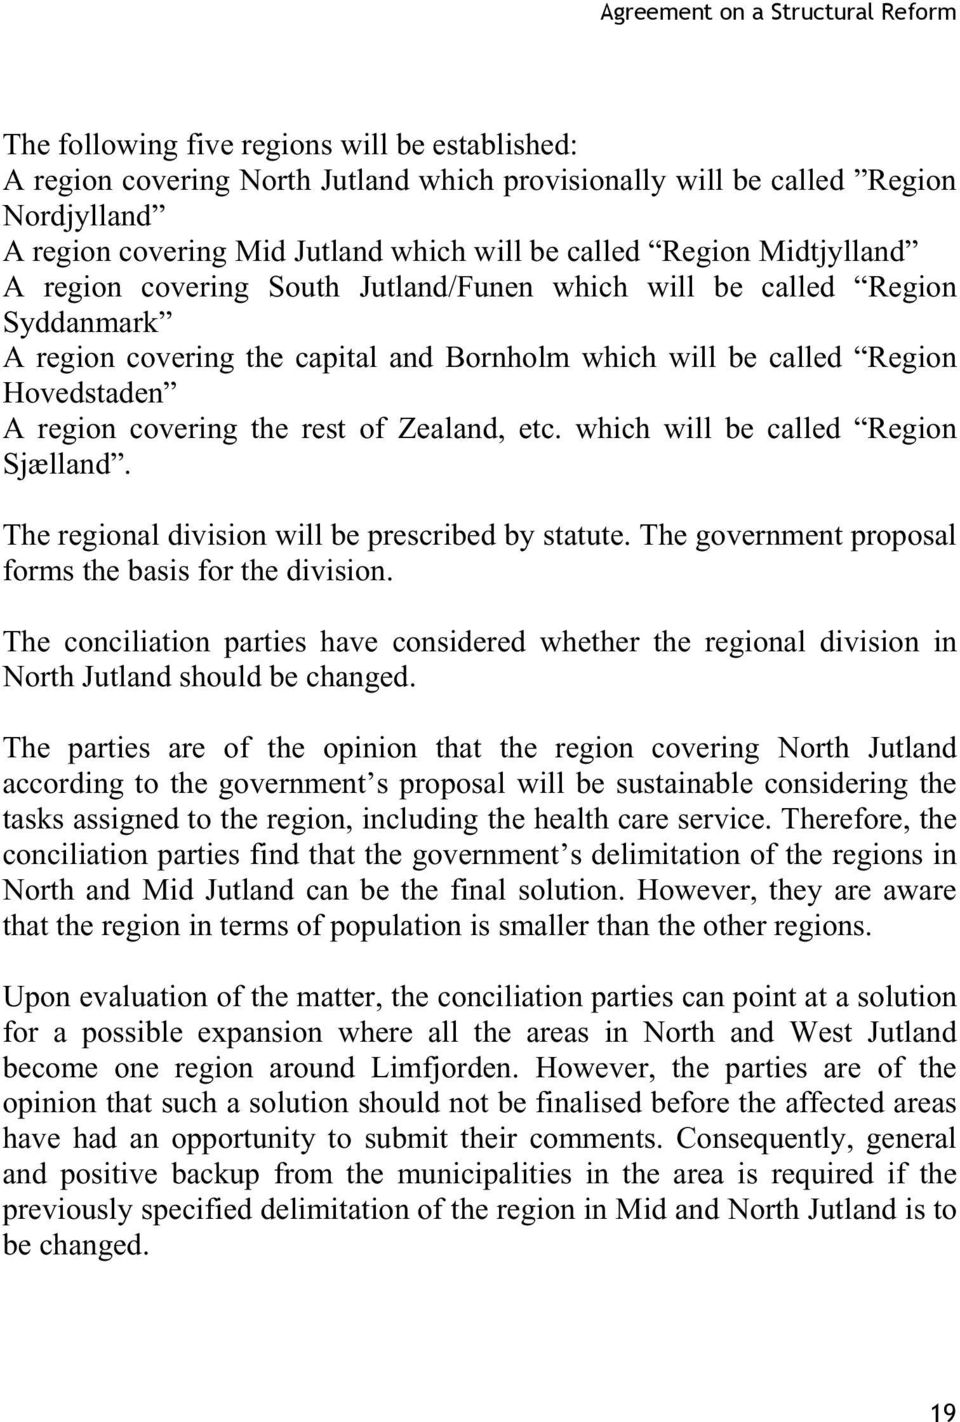 A region covering the rest of Zealand, etc. which will be called Region Sjælland. The regional division will be prescribed by statute. The government proposal forms the basis for the division.